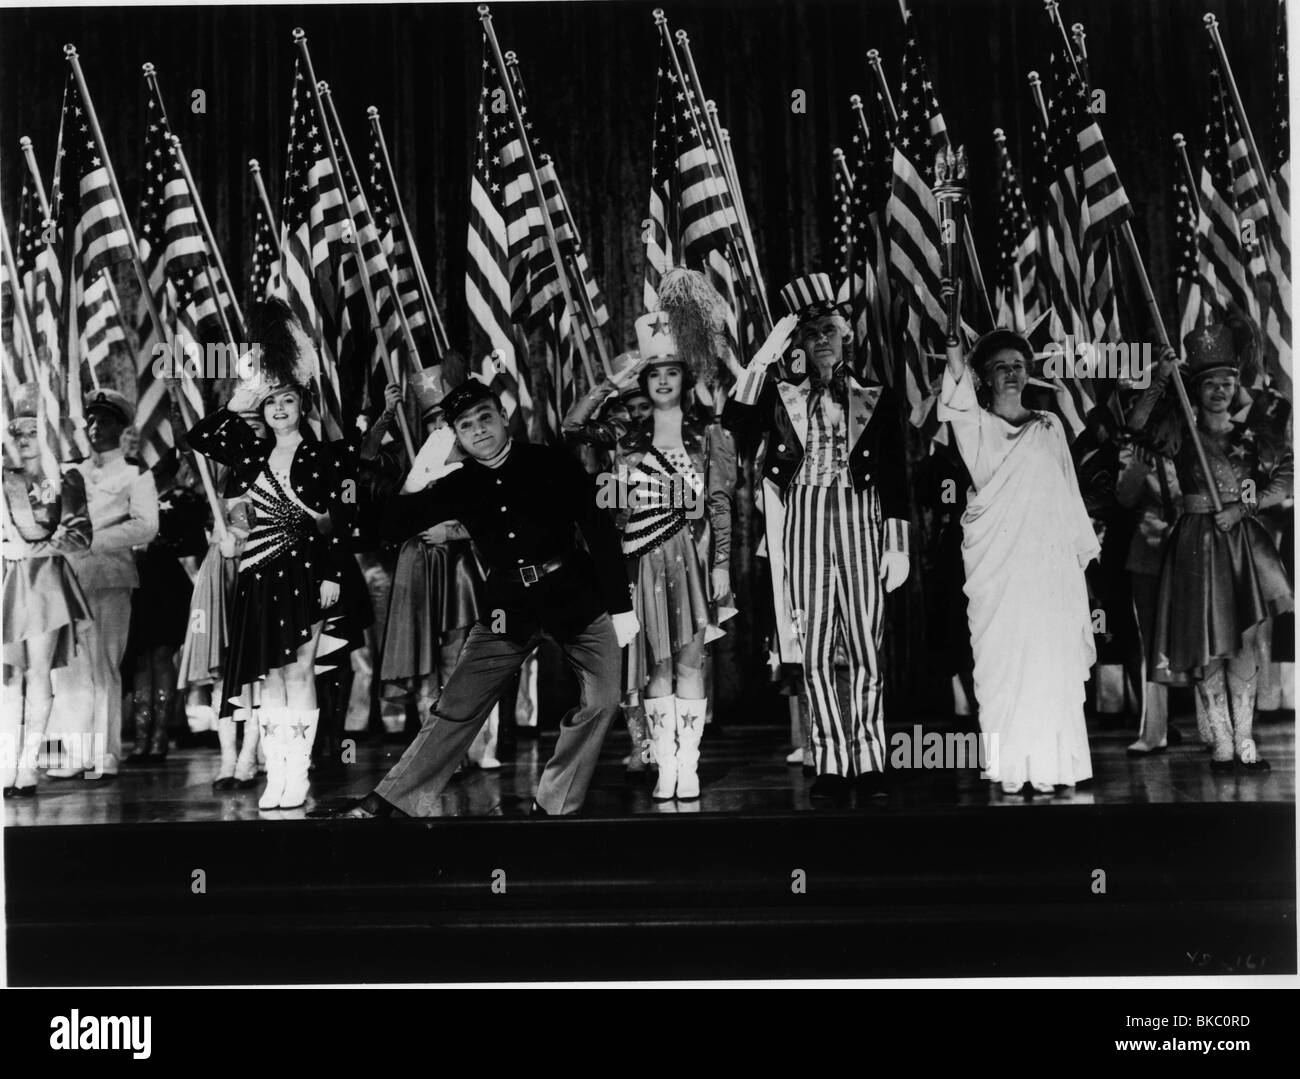 YANKEE DOODLE DANDY(1942) JAMES CAGNEY YDD 001P - Stock Image